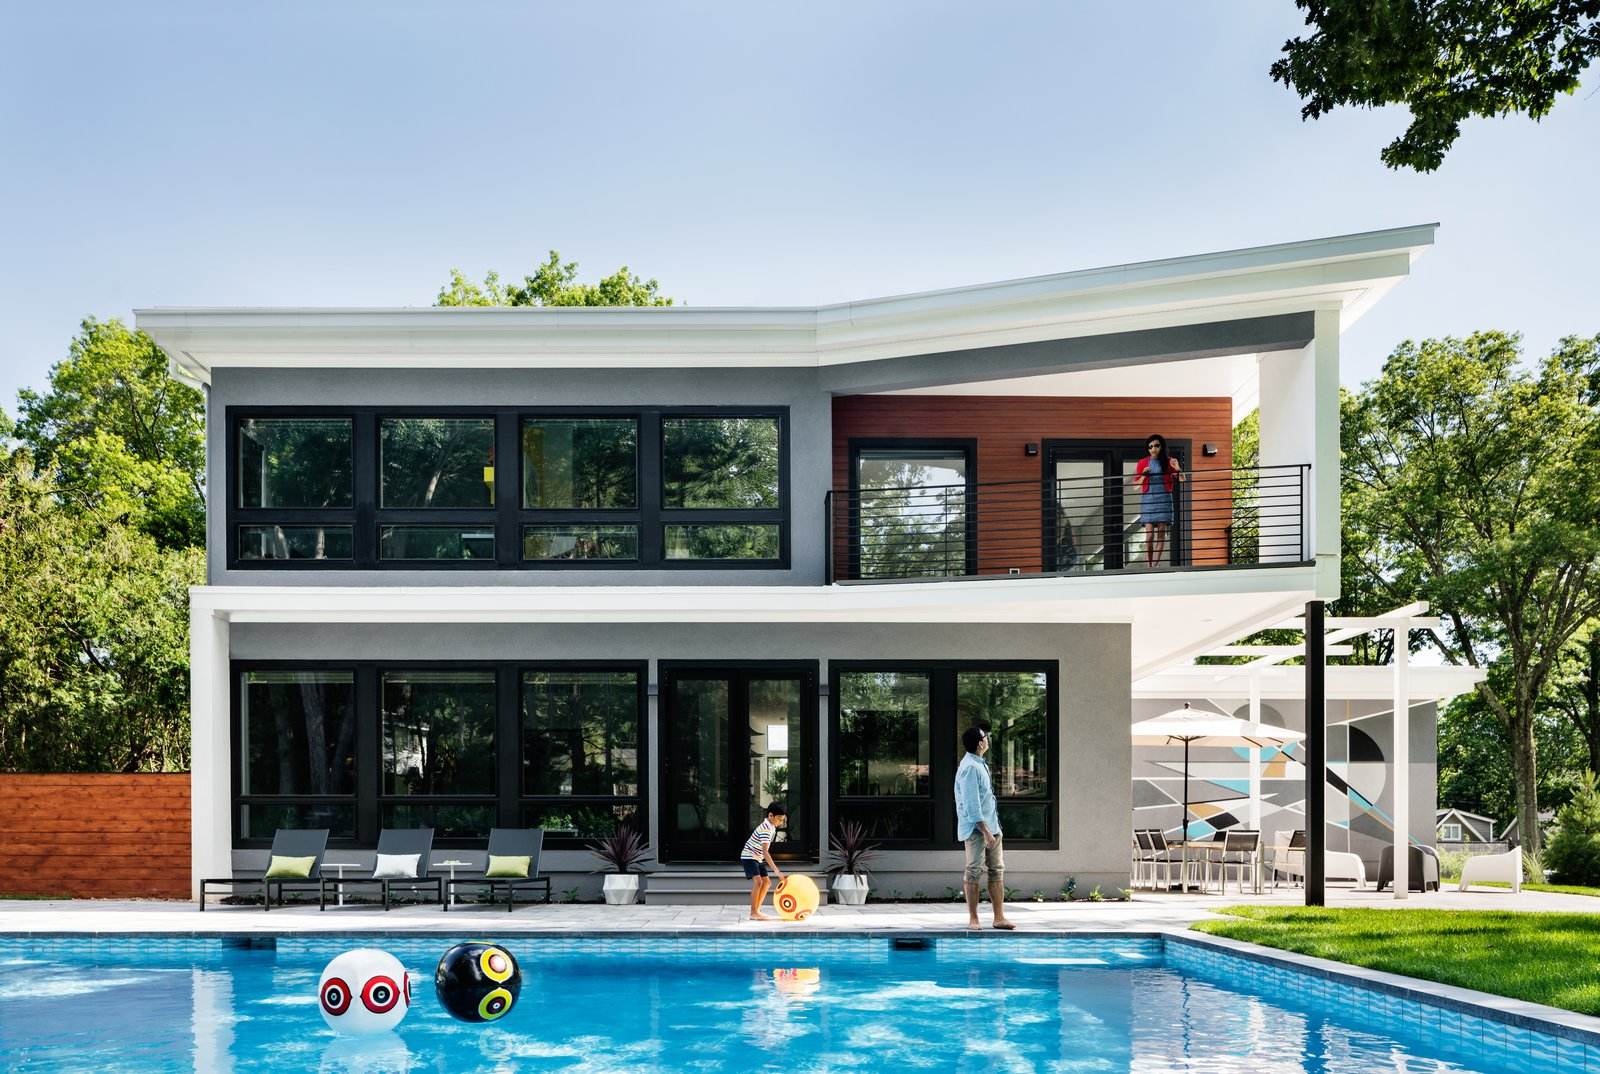 Outdoor, Back Yard, Swimming, Hardscapes, Salt Water, Concrete, Large, Large, Concrete, Pavers, Horizontal, and Wood Rear facade, with maximum glazing and balconies to maximize daylight, views and social interaction.  Best Outdoor Horizontal Swimming Photos from Roslyn Road Residence